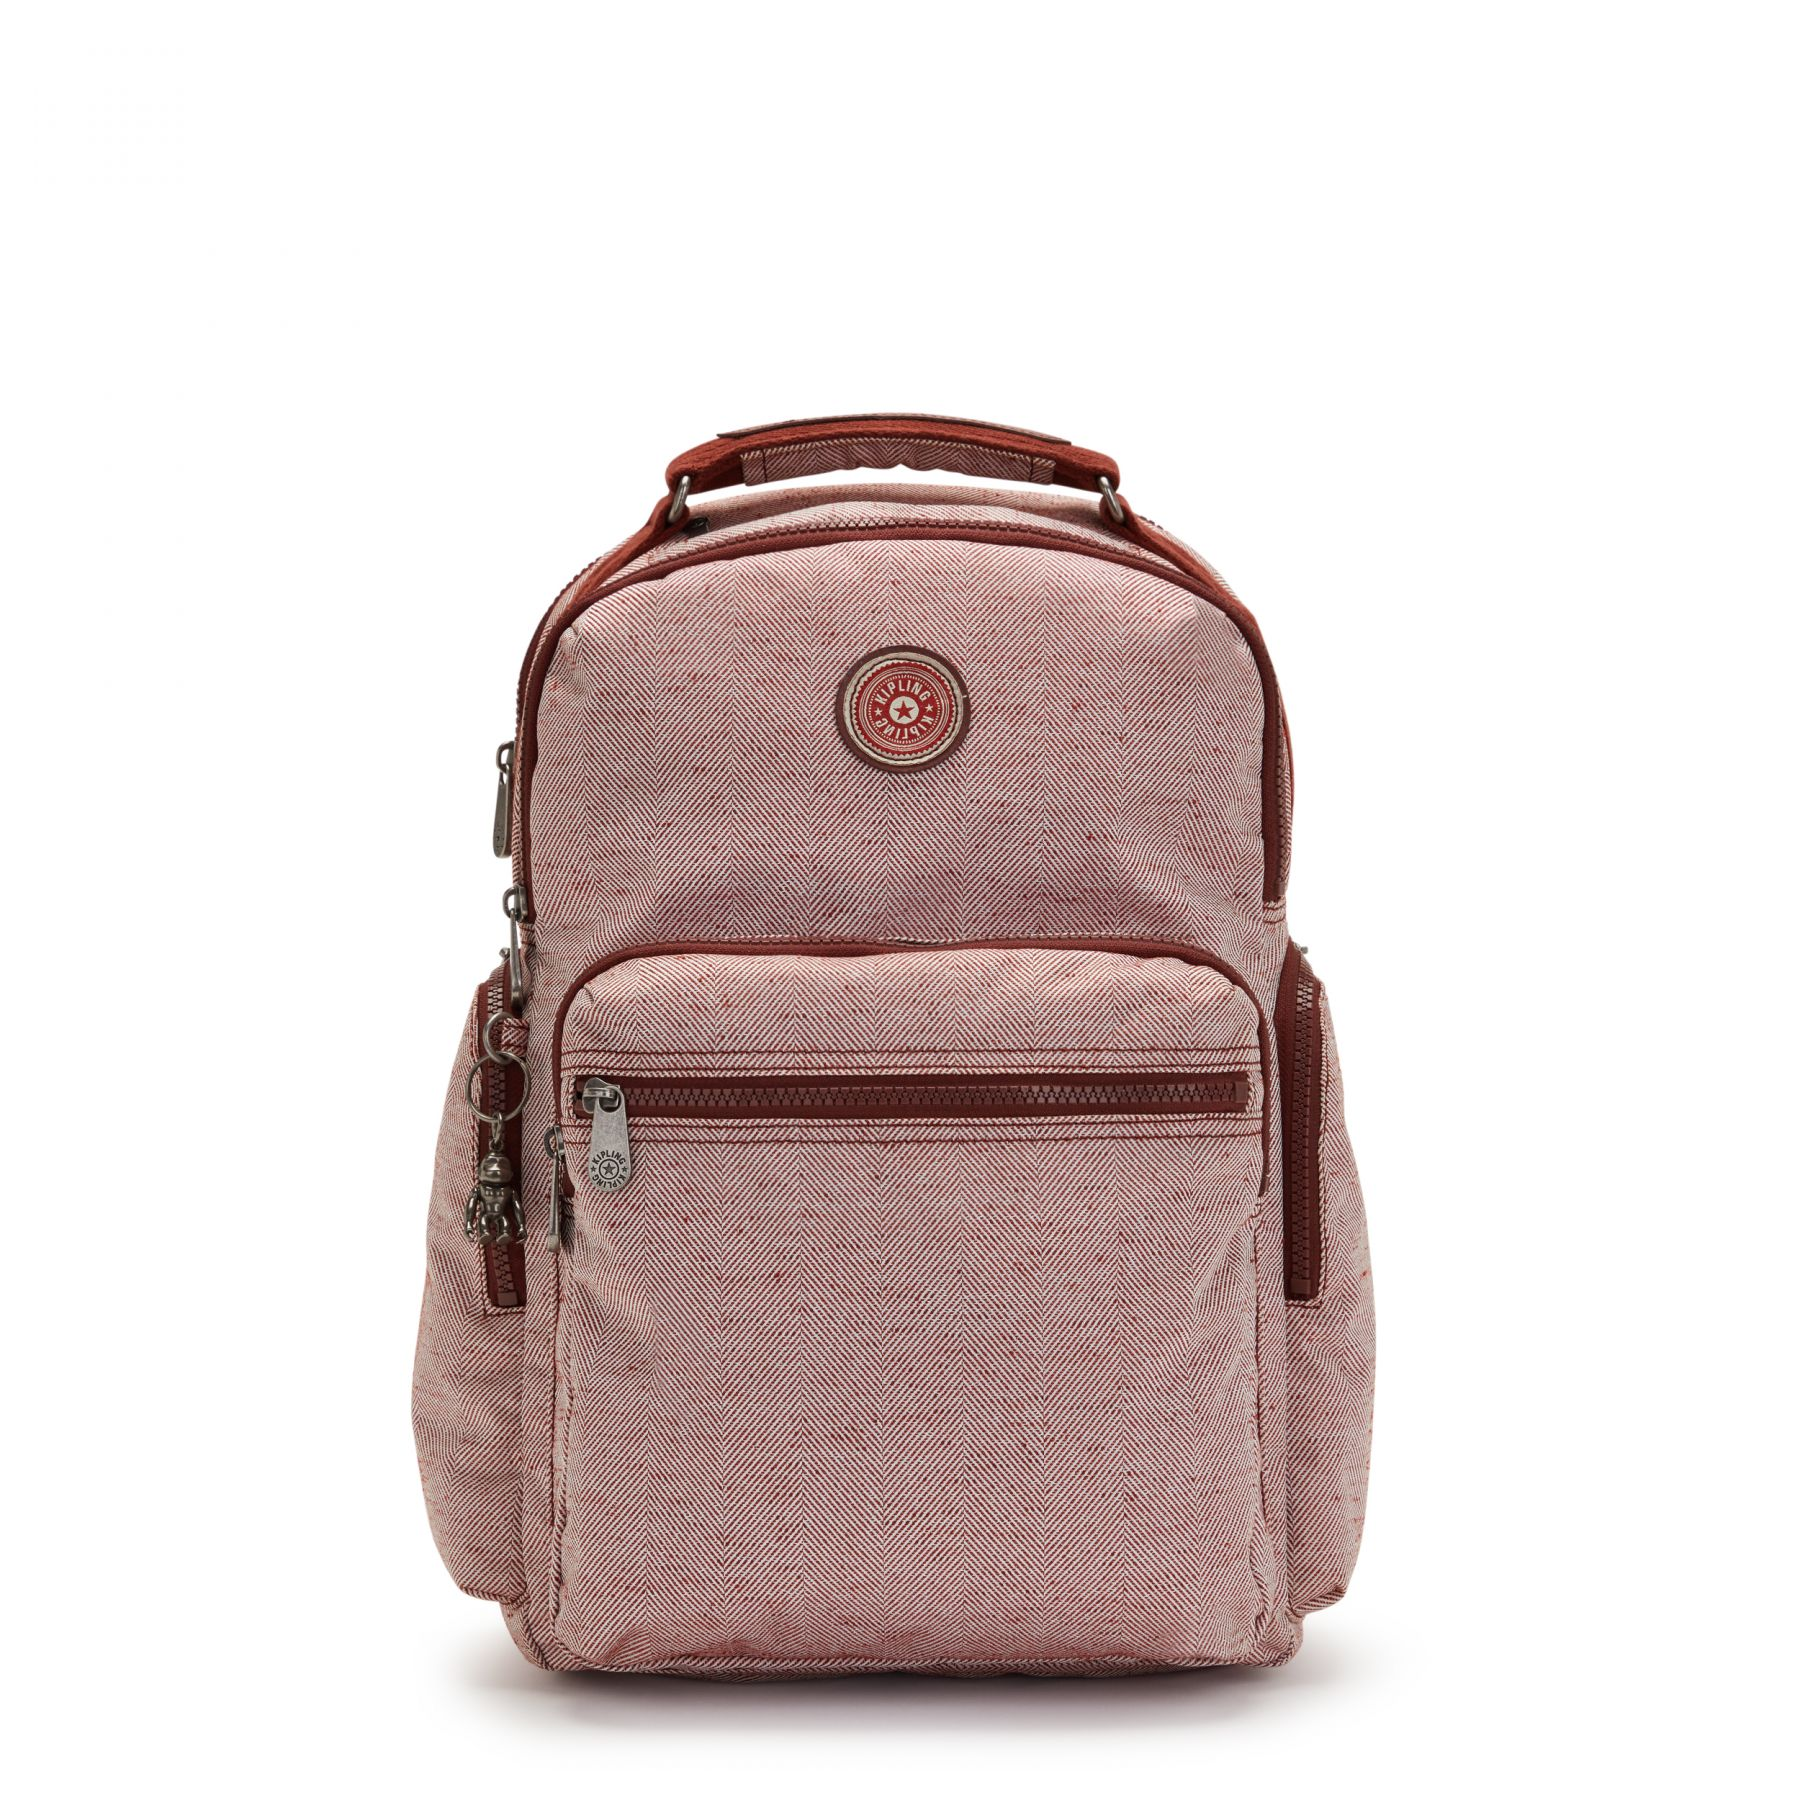 OSHO BACKPACKS by Kipling - Front view